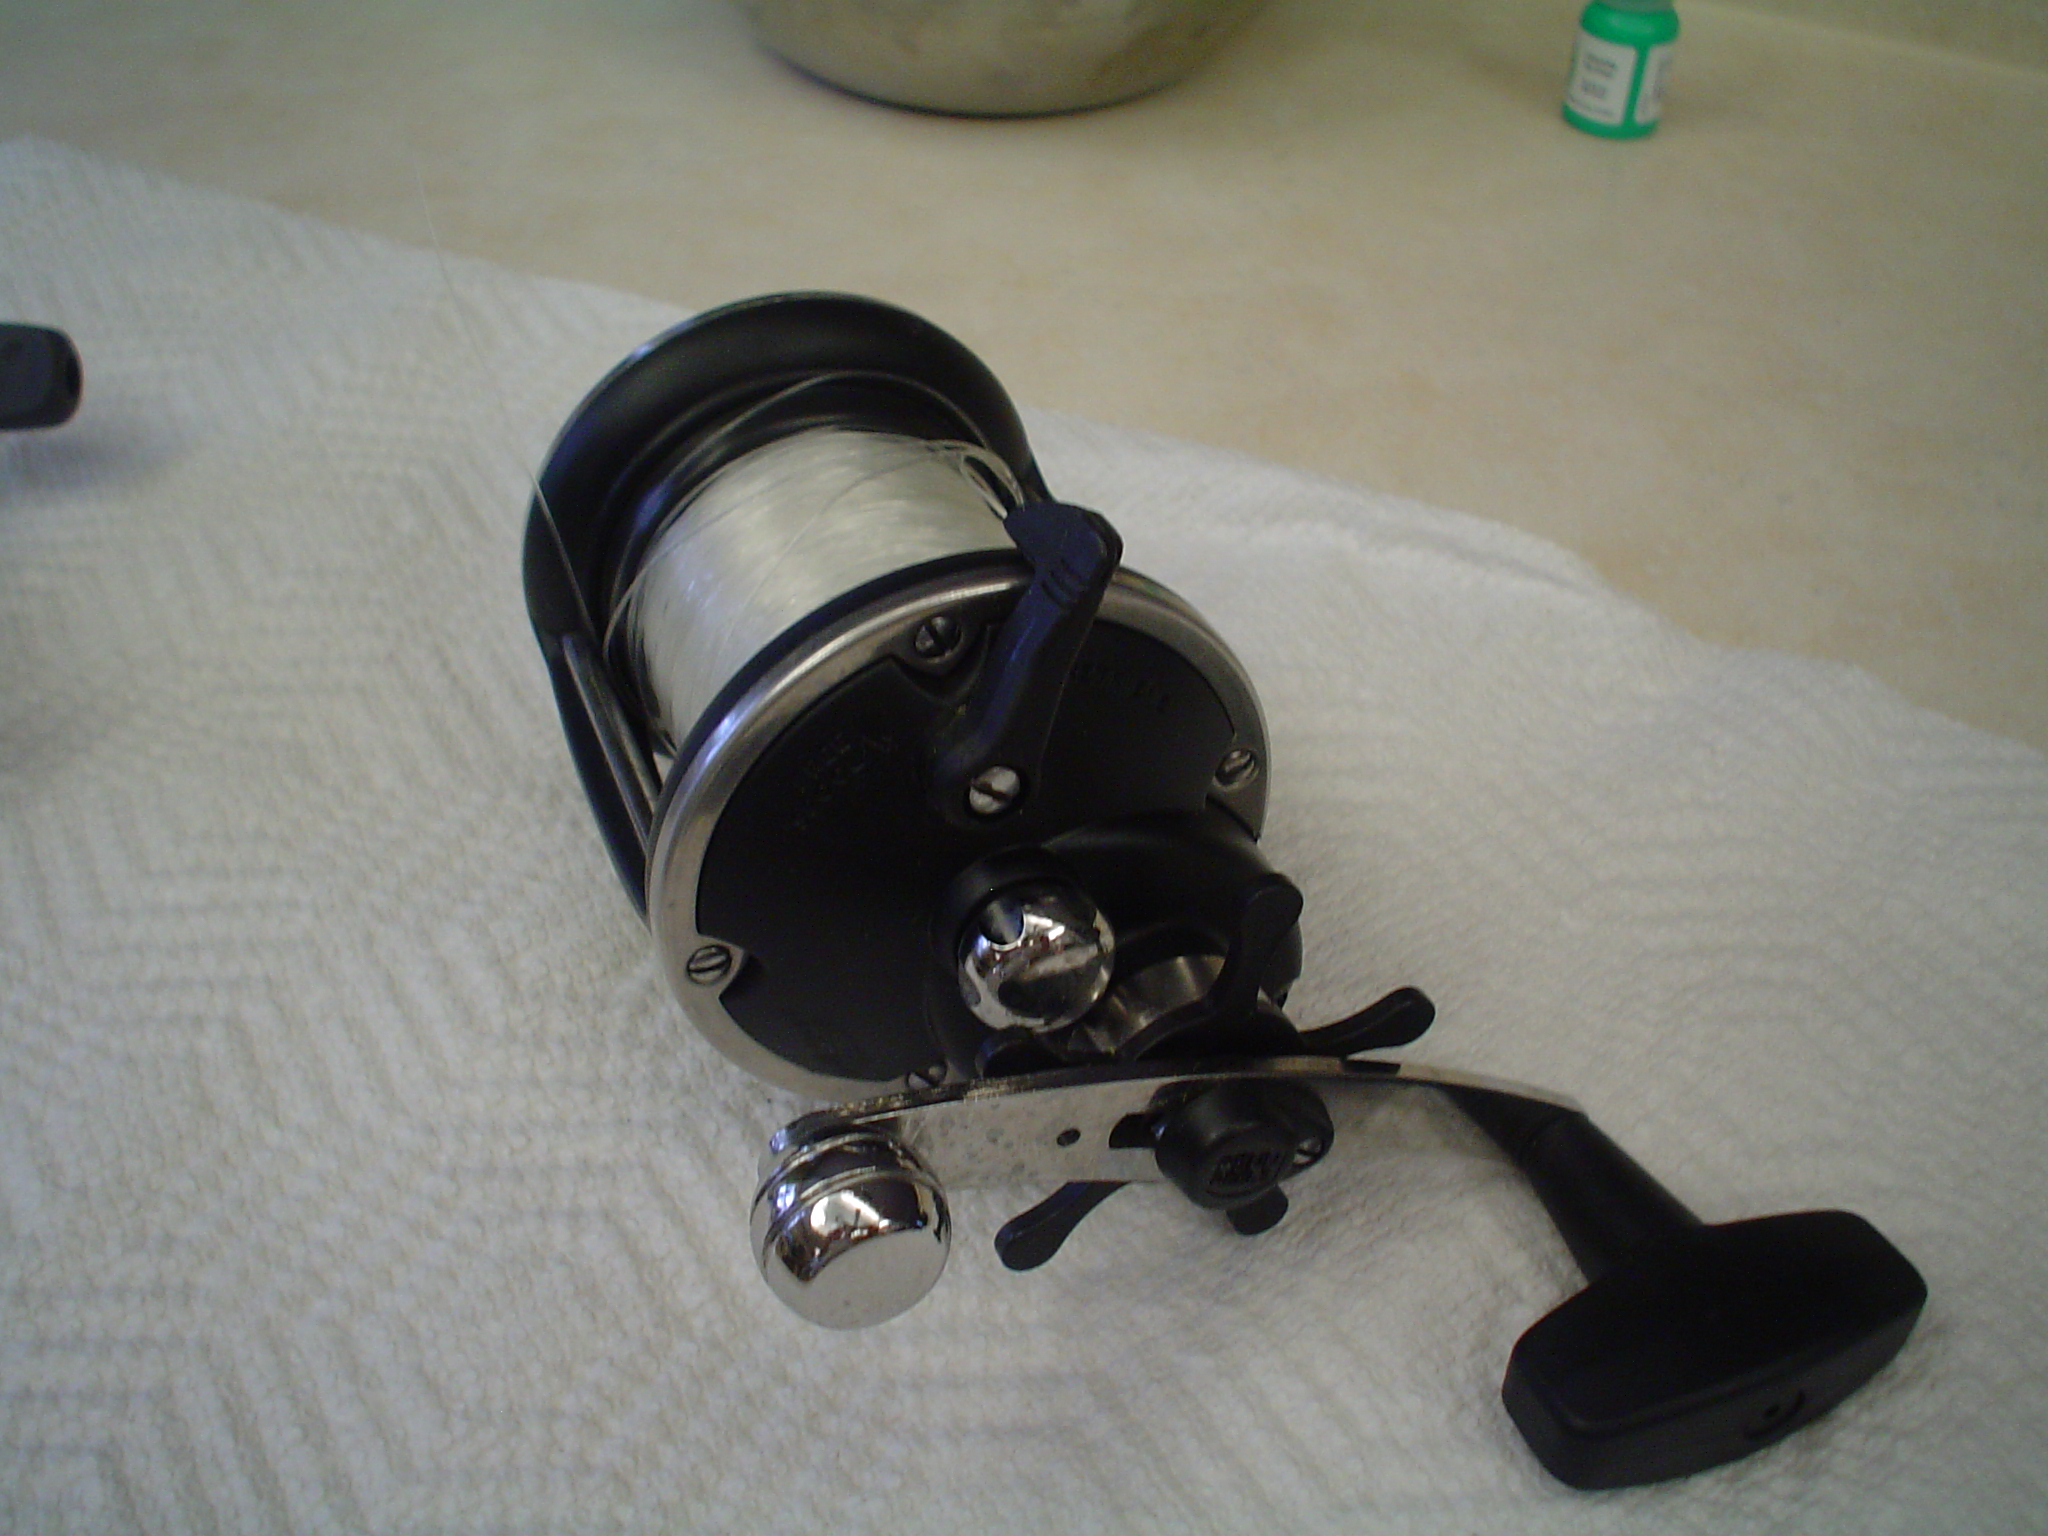 used fishing equipment and airboat for sale at discount prices, Reel Combo